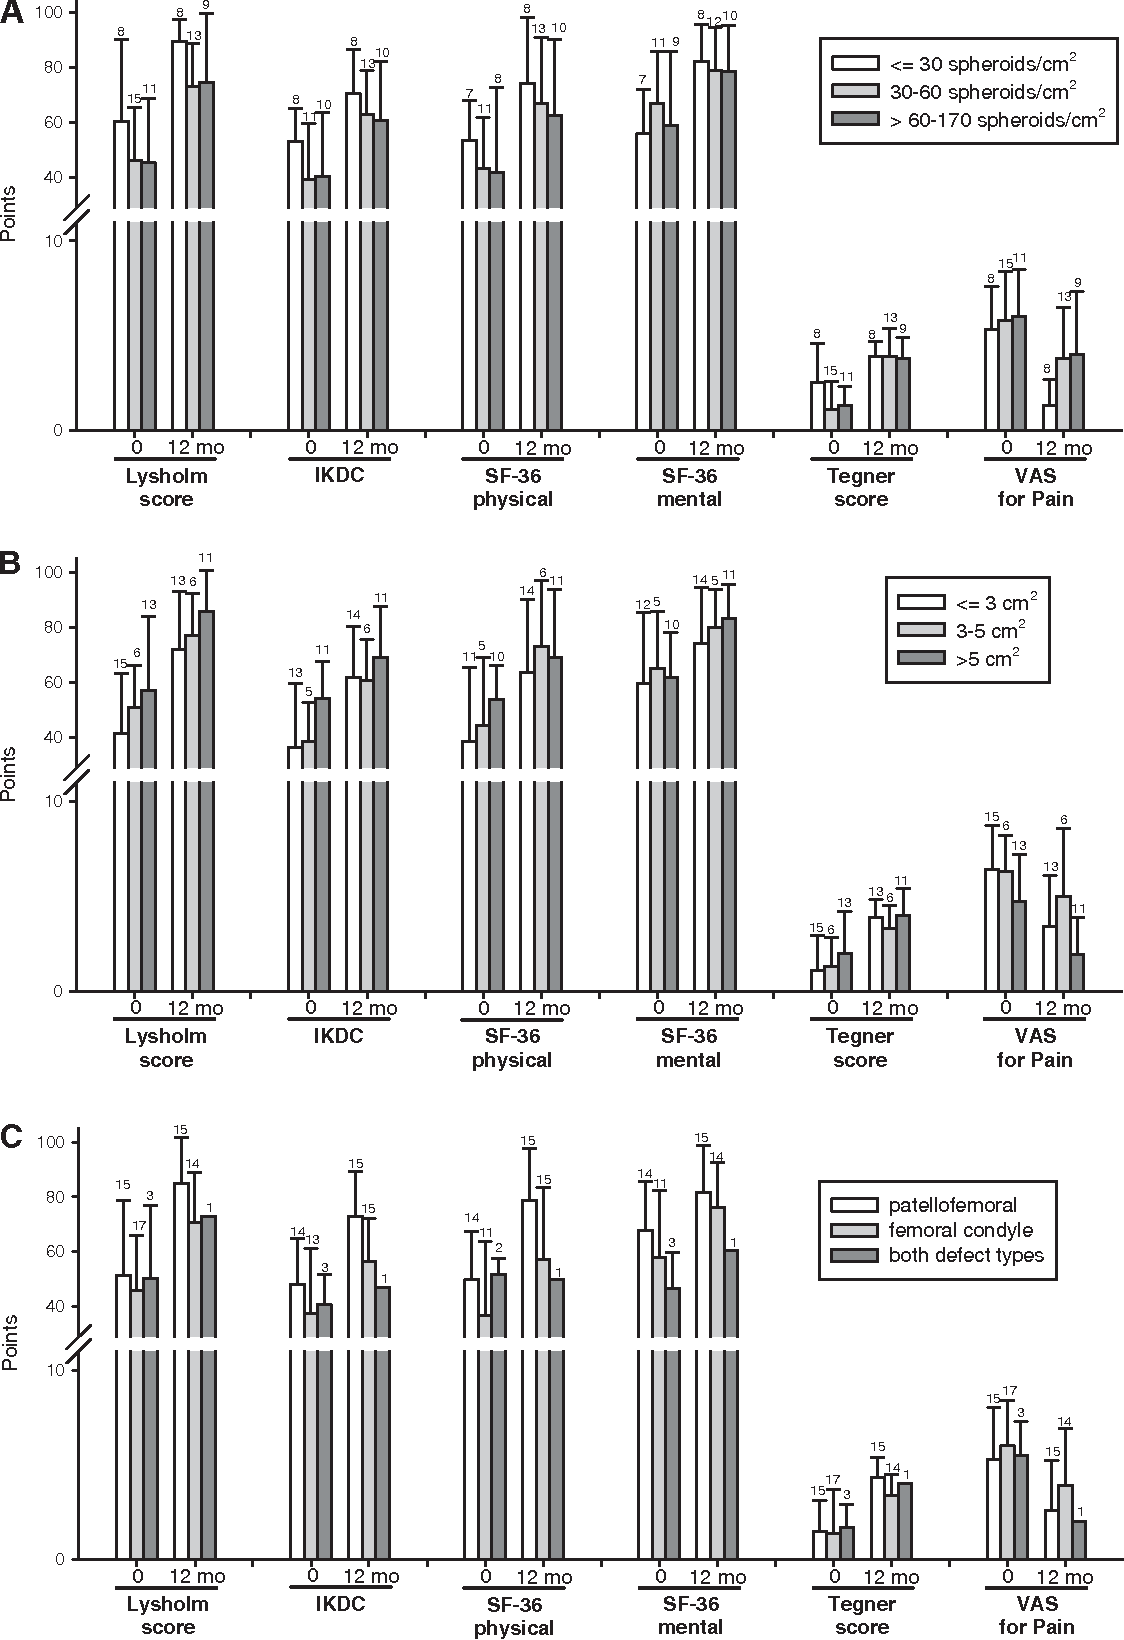 Figure 3. Changes in the self-administered assessment scores from baseline to 12 months after ACT3D depending on the spheroid dosage (A), defect size (B), and defect location (C). Numbers on top of the bars indicate the numbers of patients.